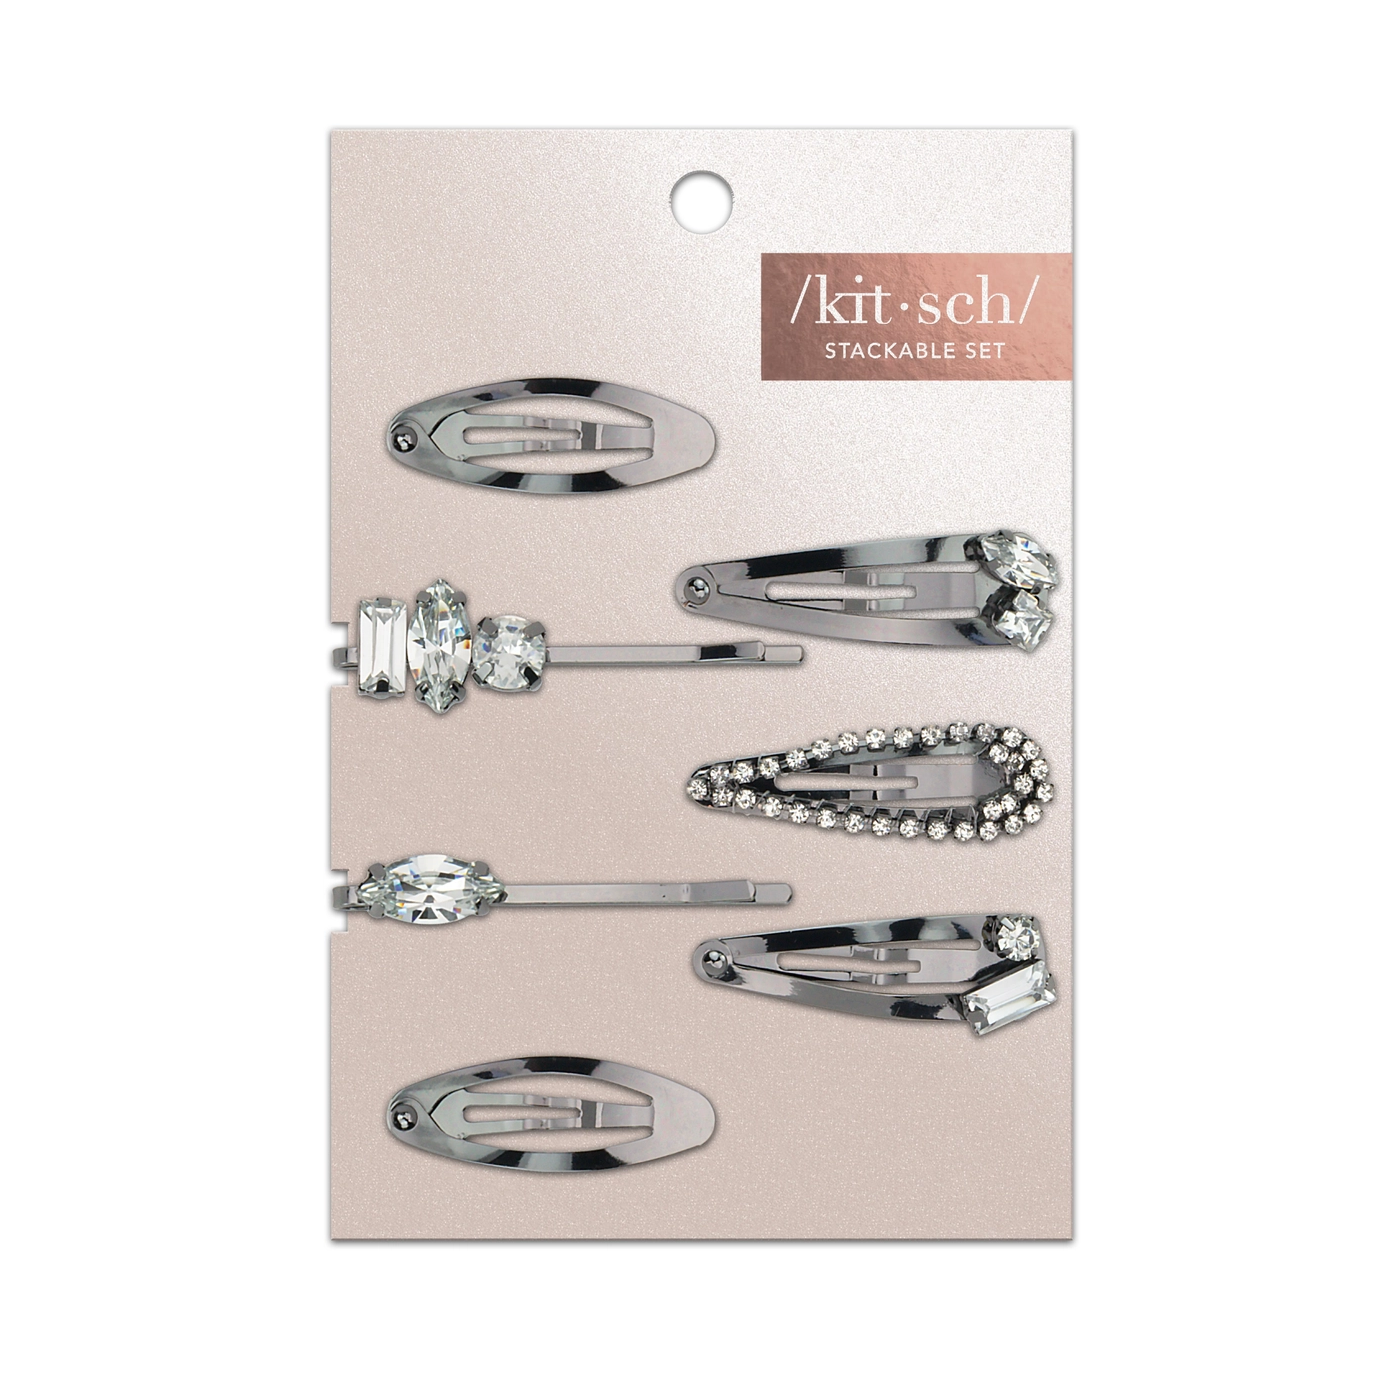 Kitsch Micro Stackable Snap Clips 7pc Set - Hematite